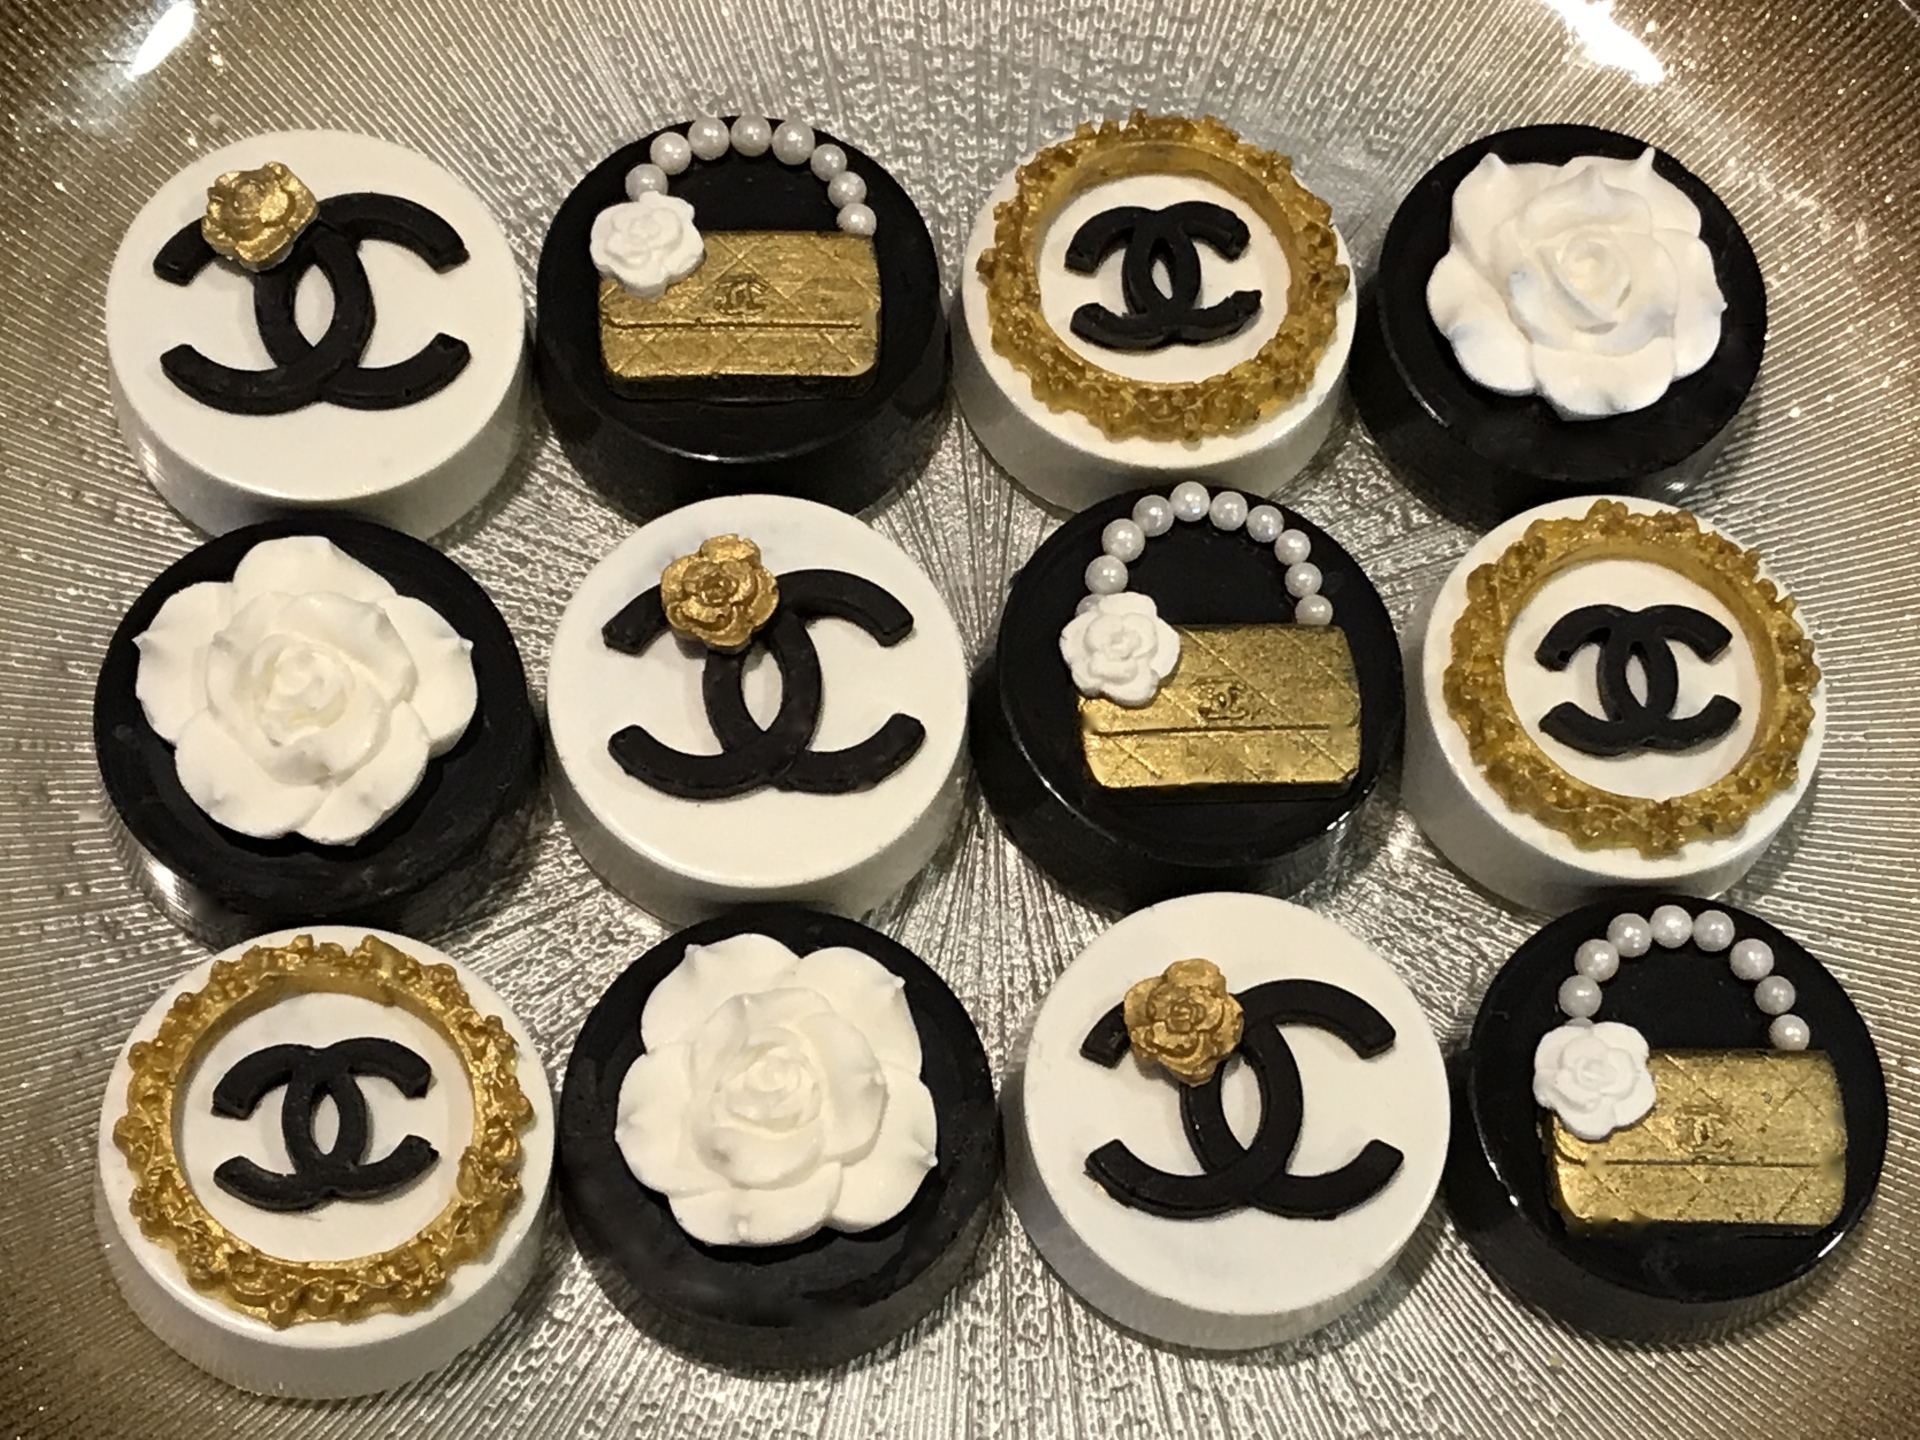 Chanel Chocolate Covered Oreos